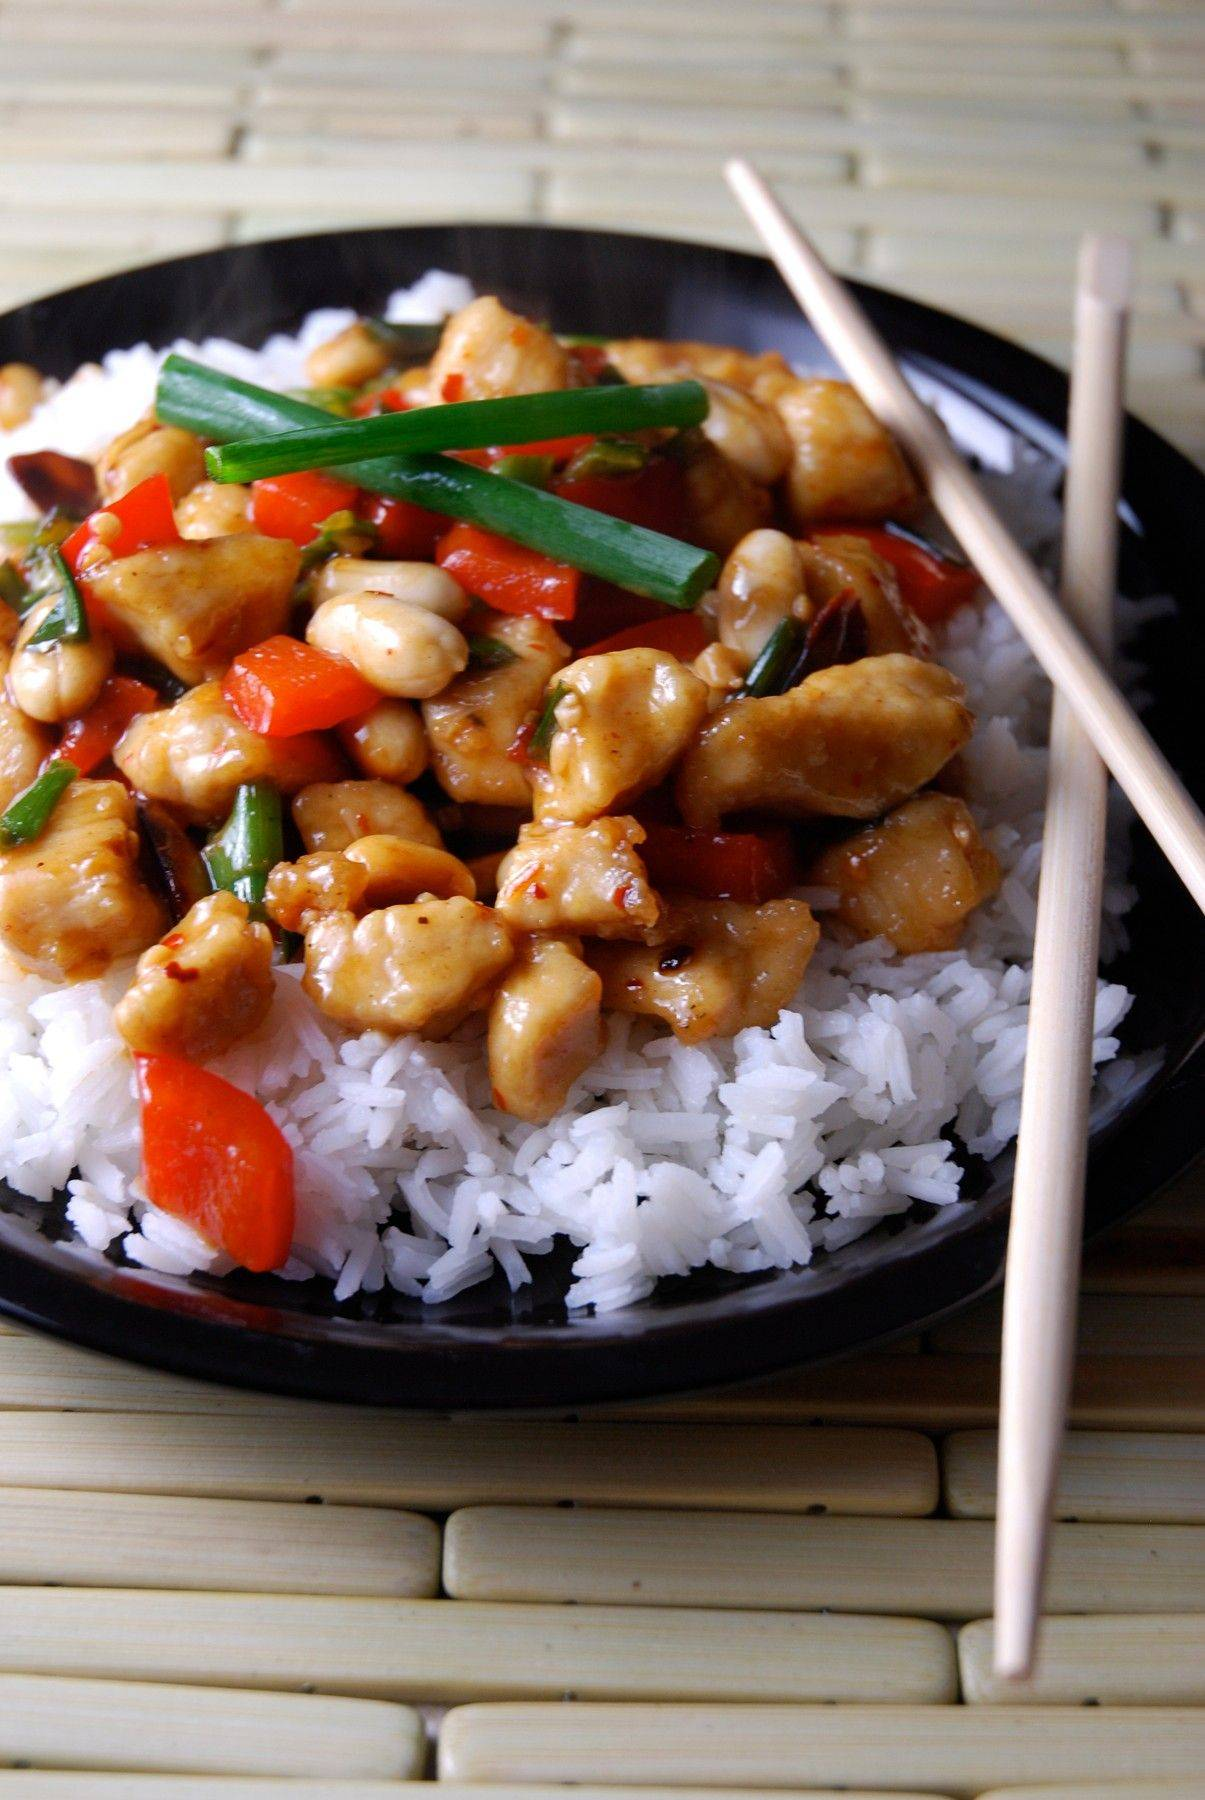 Desperation Dinners: Kung Pao Chicken gets downsized